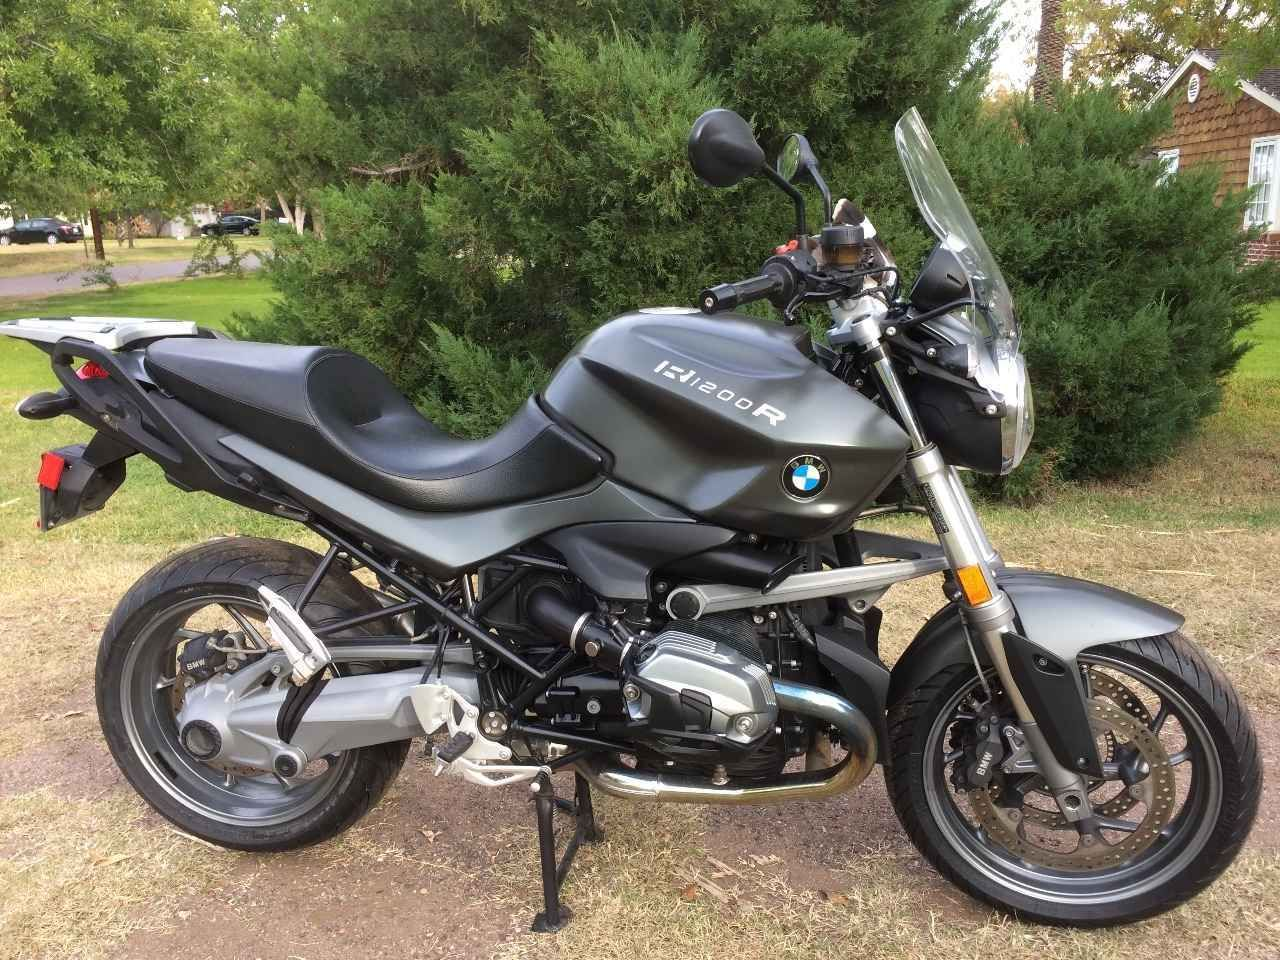 2011 Bmw R 1200 R Motorcycles For Sale Motorcycle Bmw